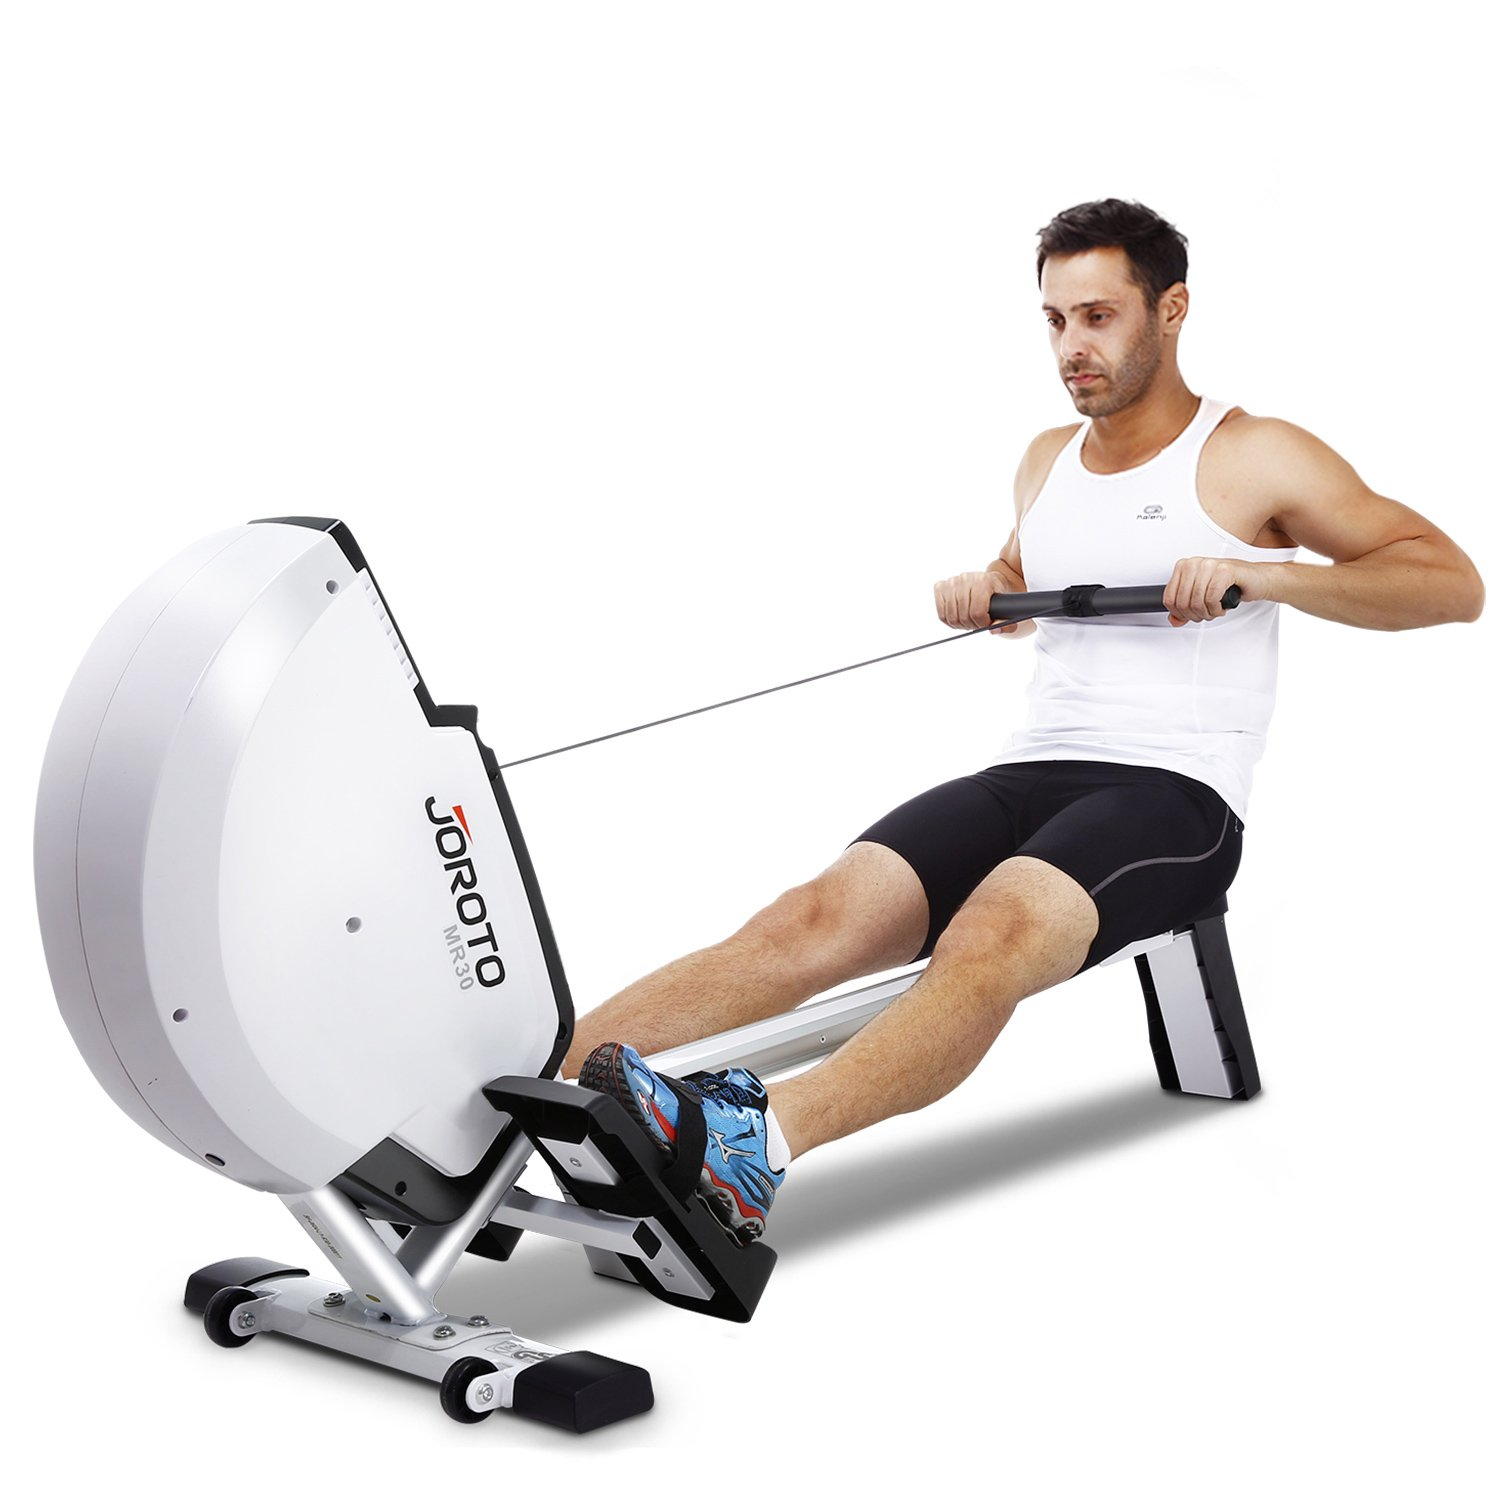 JOROTO Magnetic Rowing Machine with LCD Monitor Rower Row Machine Exercise Equipment Workout Machine for Home Use by JOROTO